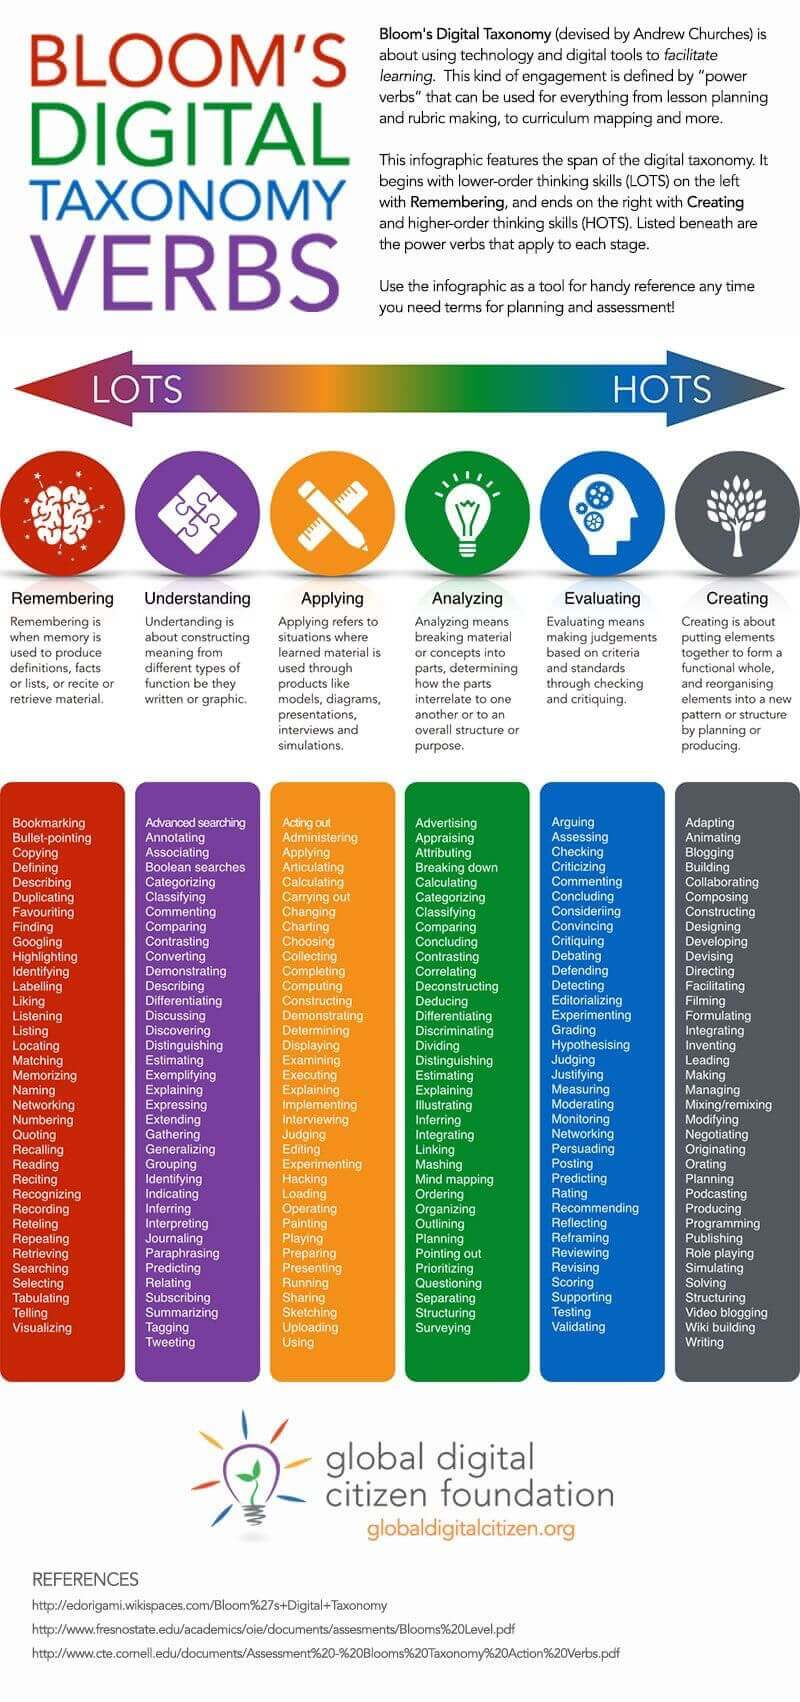 Bloom's Digital Taxonomy Verbs For 21st Century Students